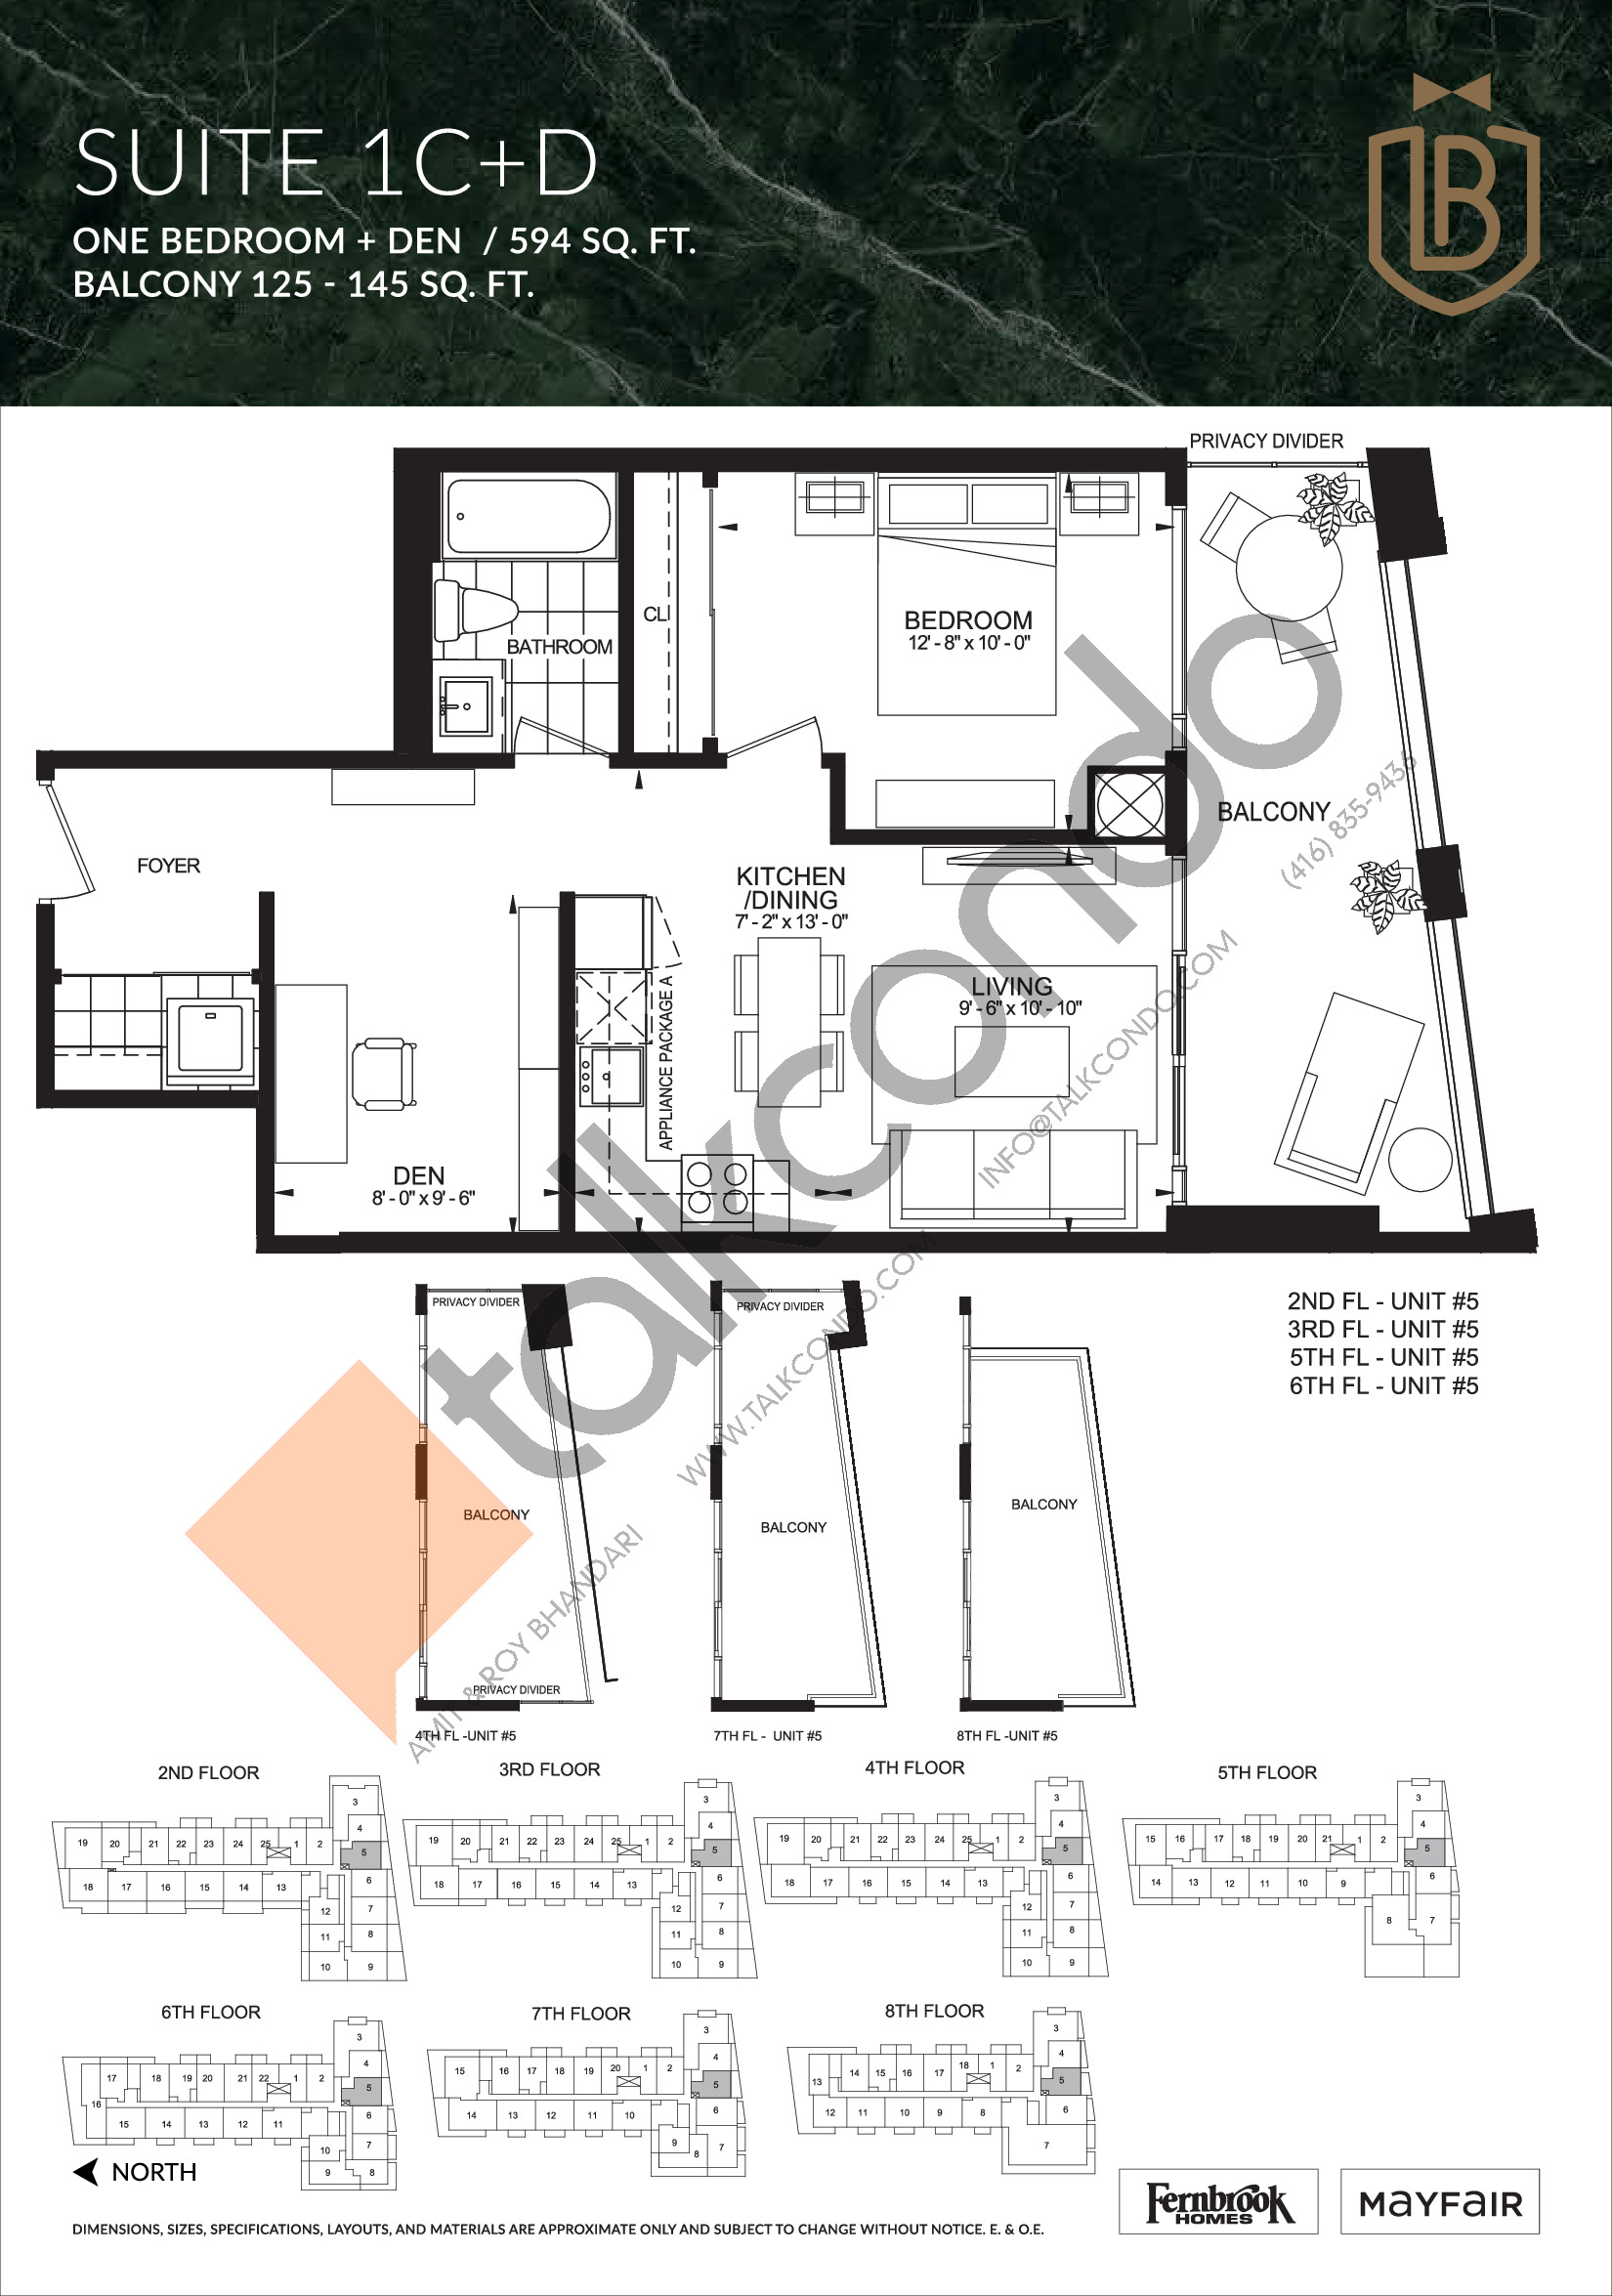 Suite 1C+D Floor Plan at The Butler Condos - 594 sq.ft